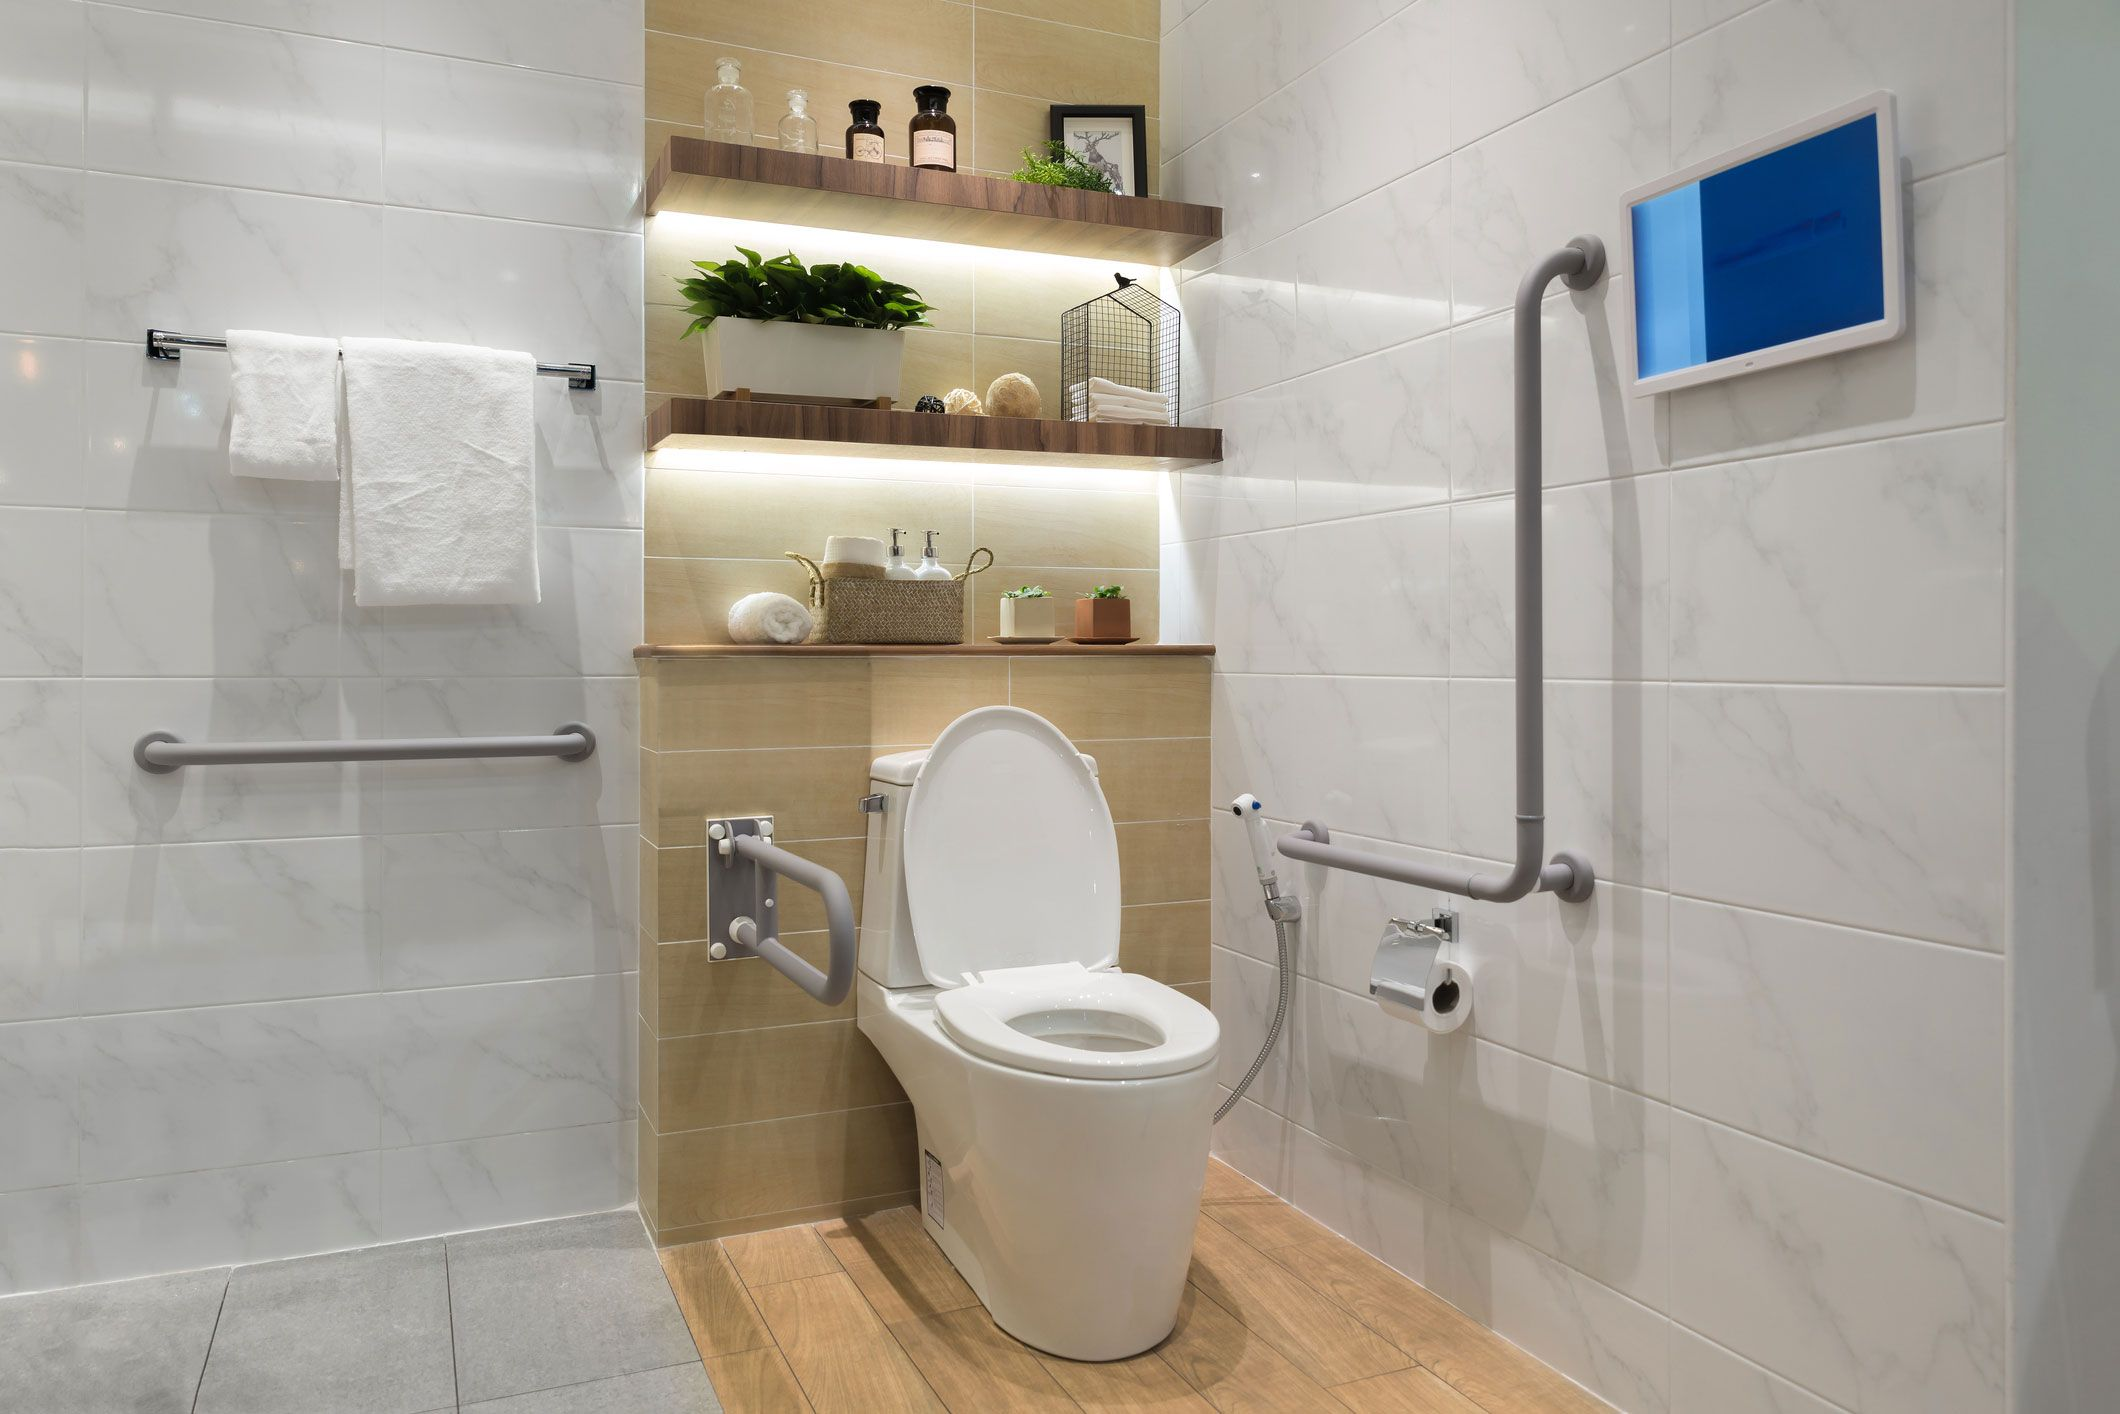 Image Bathroom With Handicap Fixtures Home Improvement - Lovetoknow